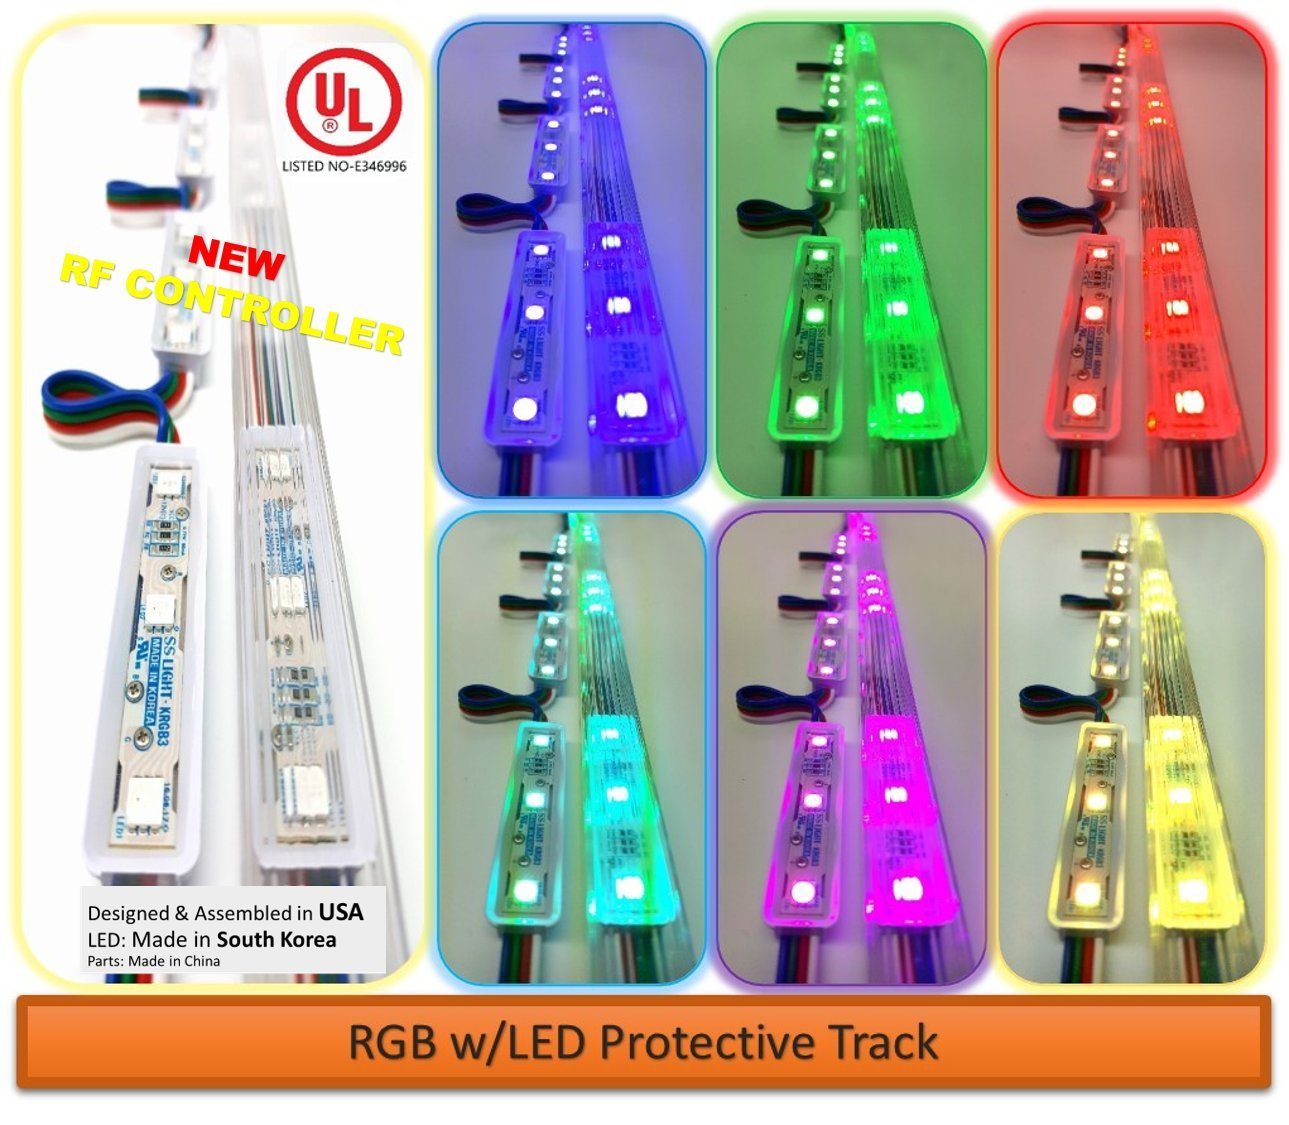 Storefront Window LED Lights Kit with Protective Tracks for Indoor & Outdoor Plug in Light (Multi-colored 25ft)